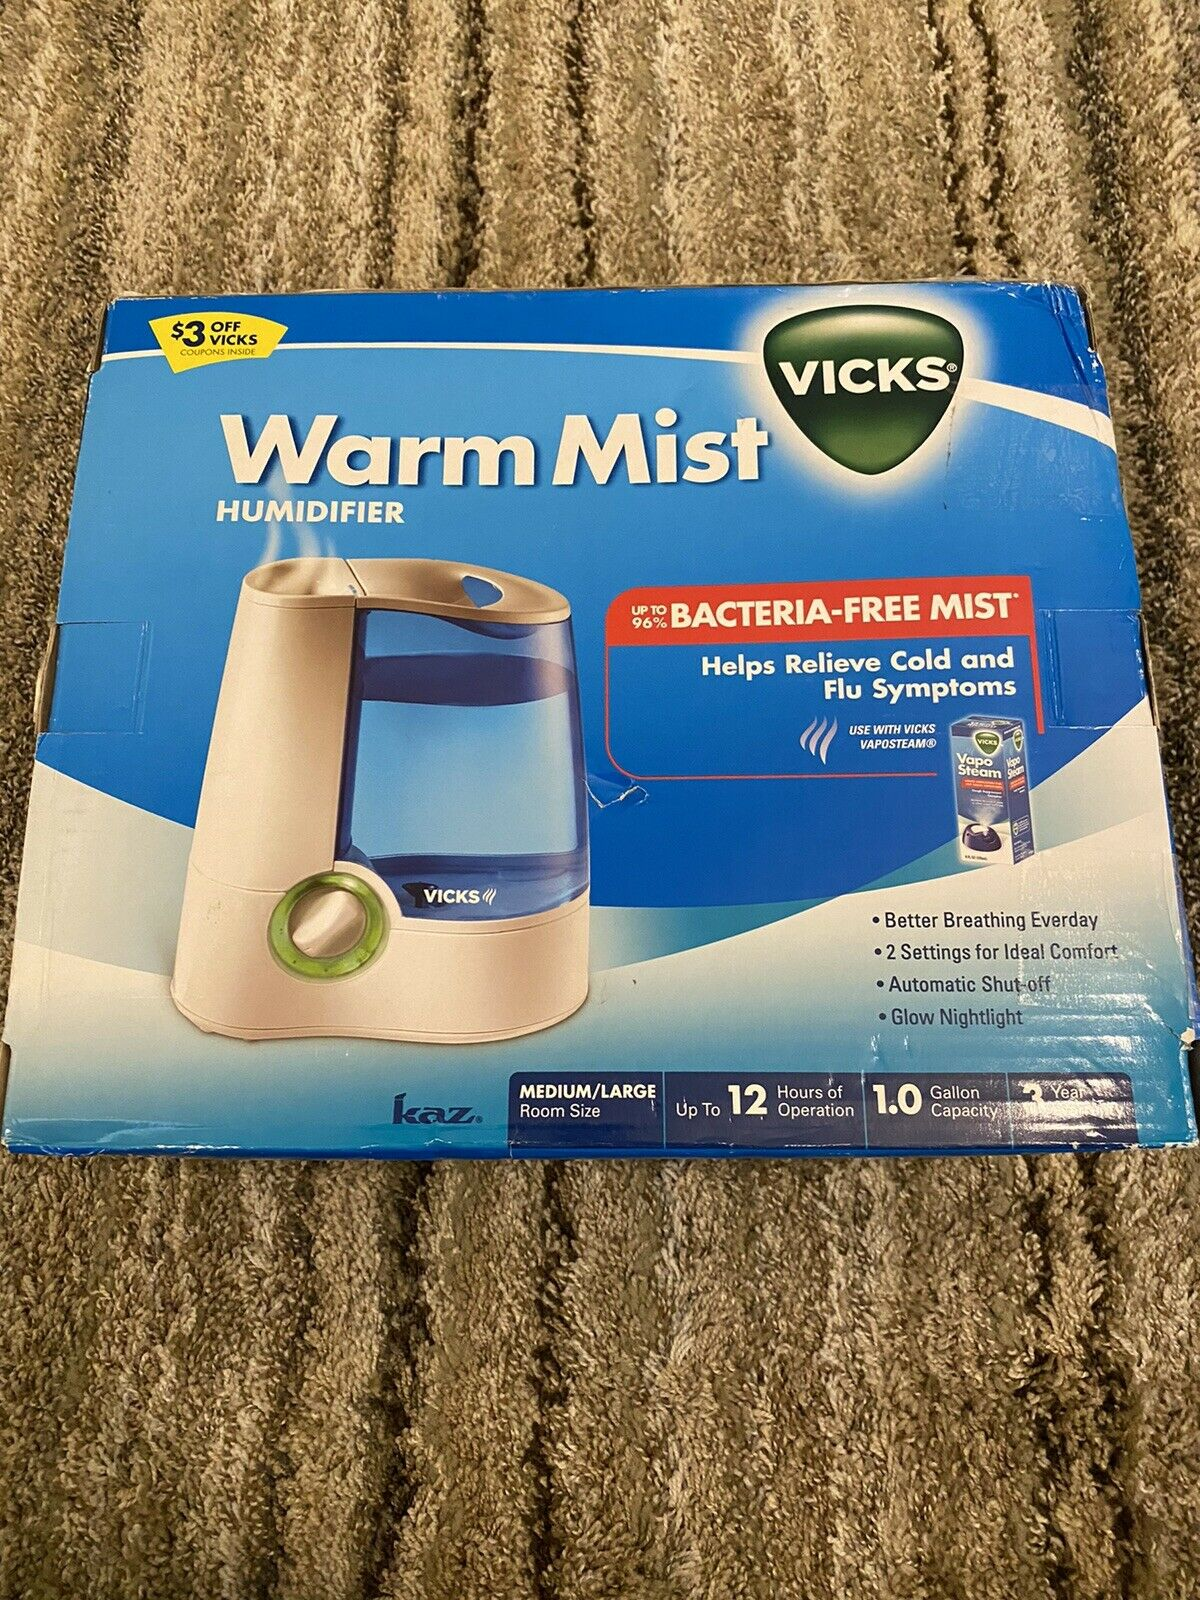 Kaz V745A, Vicks Warm Mist Humidifier V745A User Manual